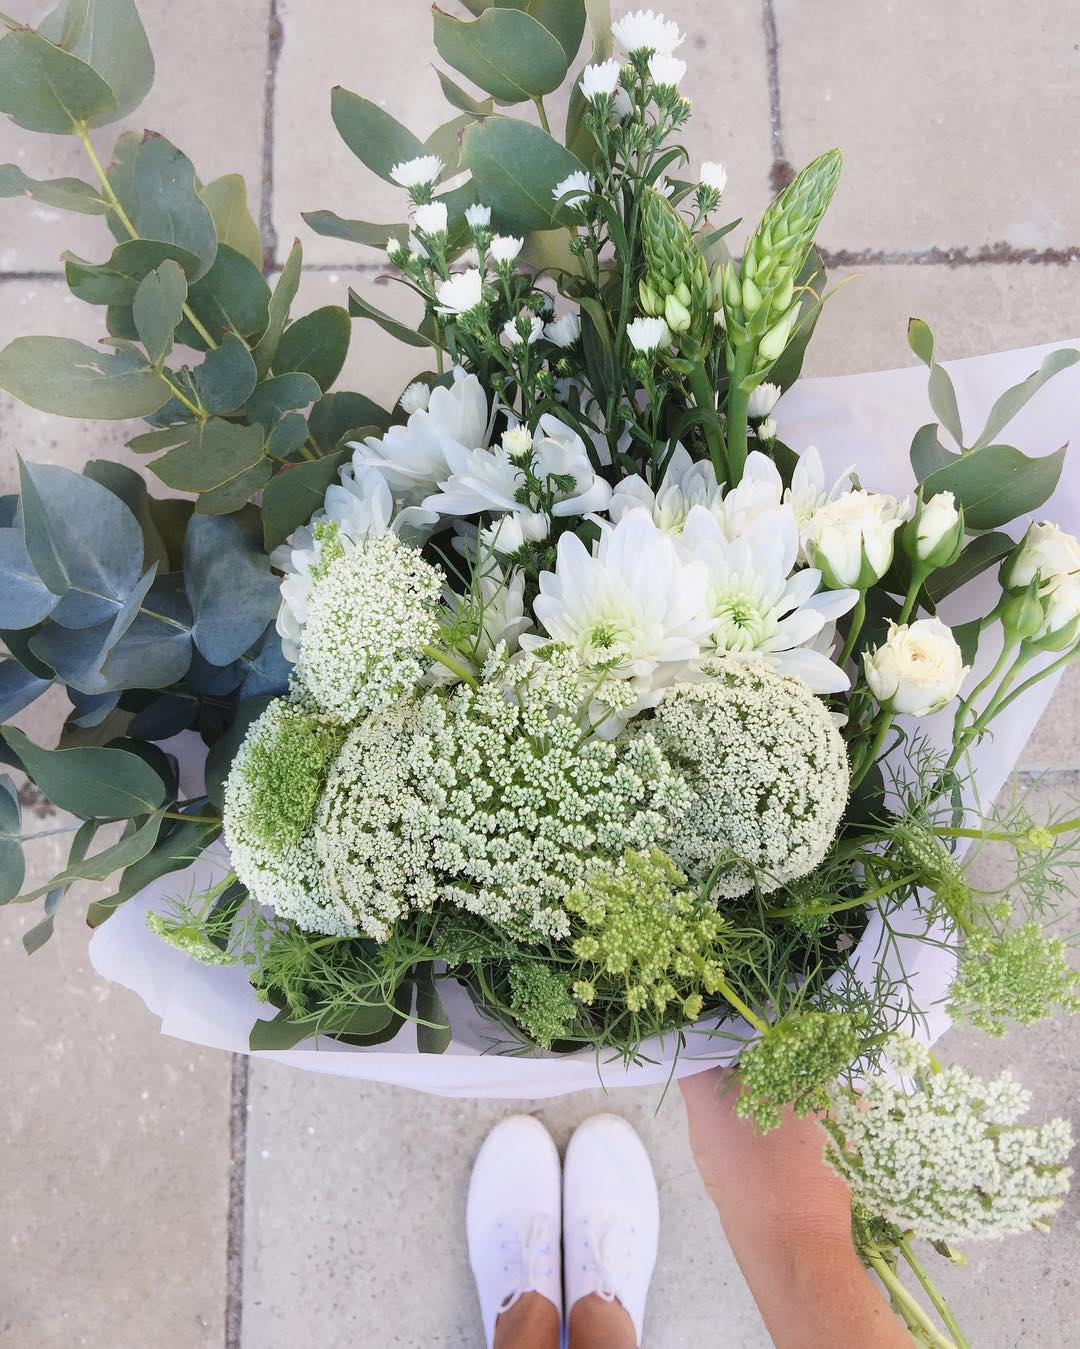 Classically beautiful. Today's Posy draws inspiration from many of the bridal bouquets that we have been making of late. Today's Posy is Queen Anne's with daisies, chincherinchees, fresh penny gum and sprays. Order online before 12:30pm for delivery today.  #Petalandpost#capetown#capetownflorist#florist#flowers#blooms#dailyblooms#posy#instadaily#flowerstagram#flowersofinstagram#southafrica#lovezabuyza#localzadesign#lovelocalza#hellopretty#capetownmag#cylcollective #capetownlikes#flowercrown#supportlocal#protea#flowercrown#crown#posylove#hair#wedding#photoshoot#local#botanical#theprettyblog